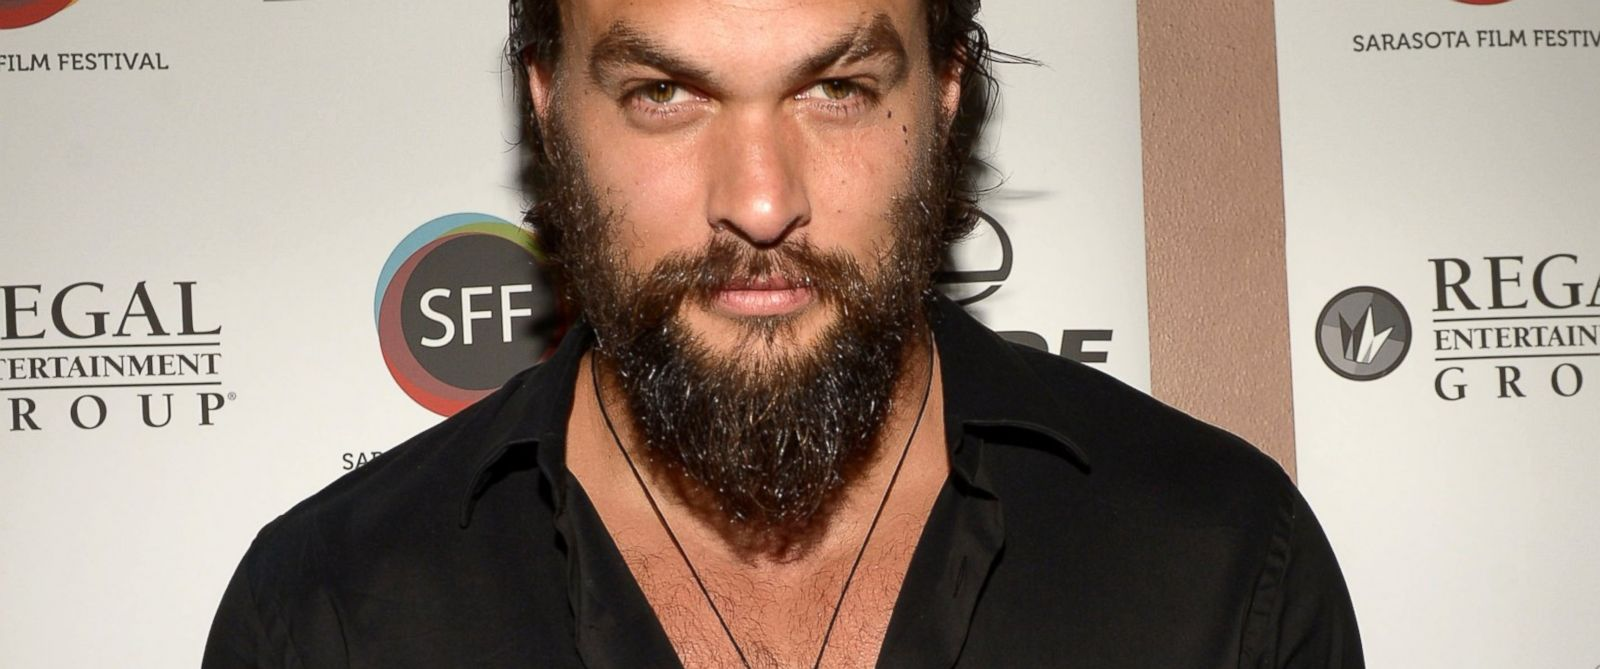 PHOTO: Jason Momoa arrives to a screening of Road to Paloma during the Sarasota Film Festival at Regal Cinemas Hollywood Stadium, April 12, 2014 in Sarasota, Fla.